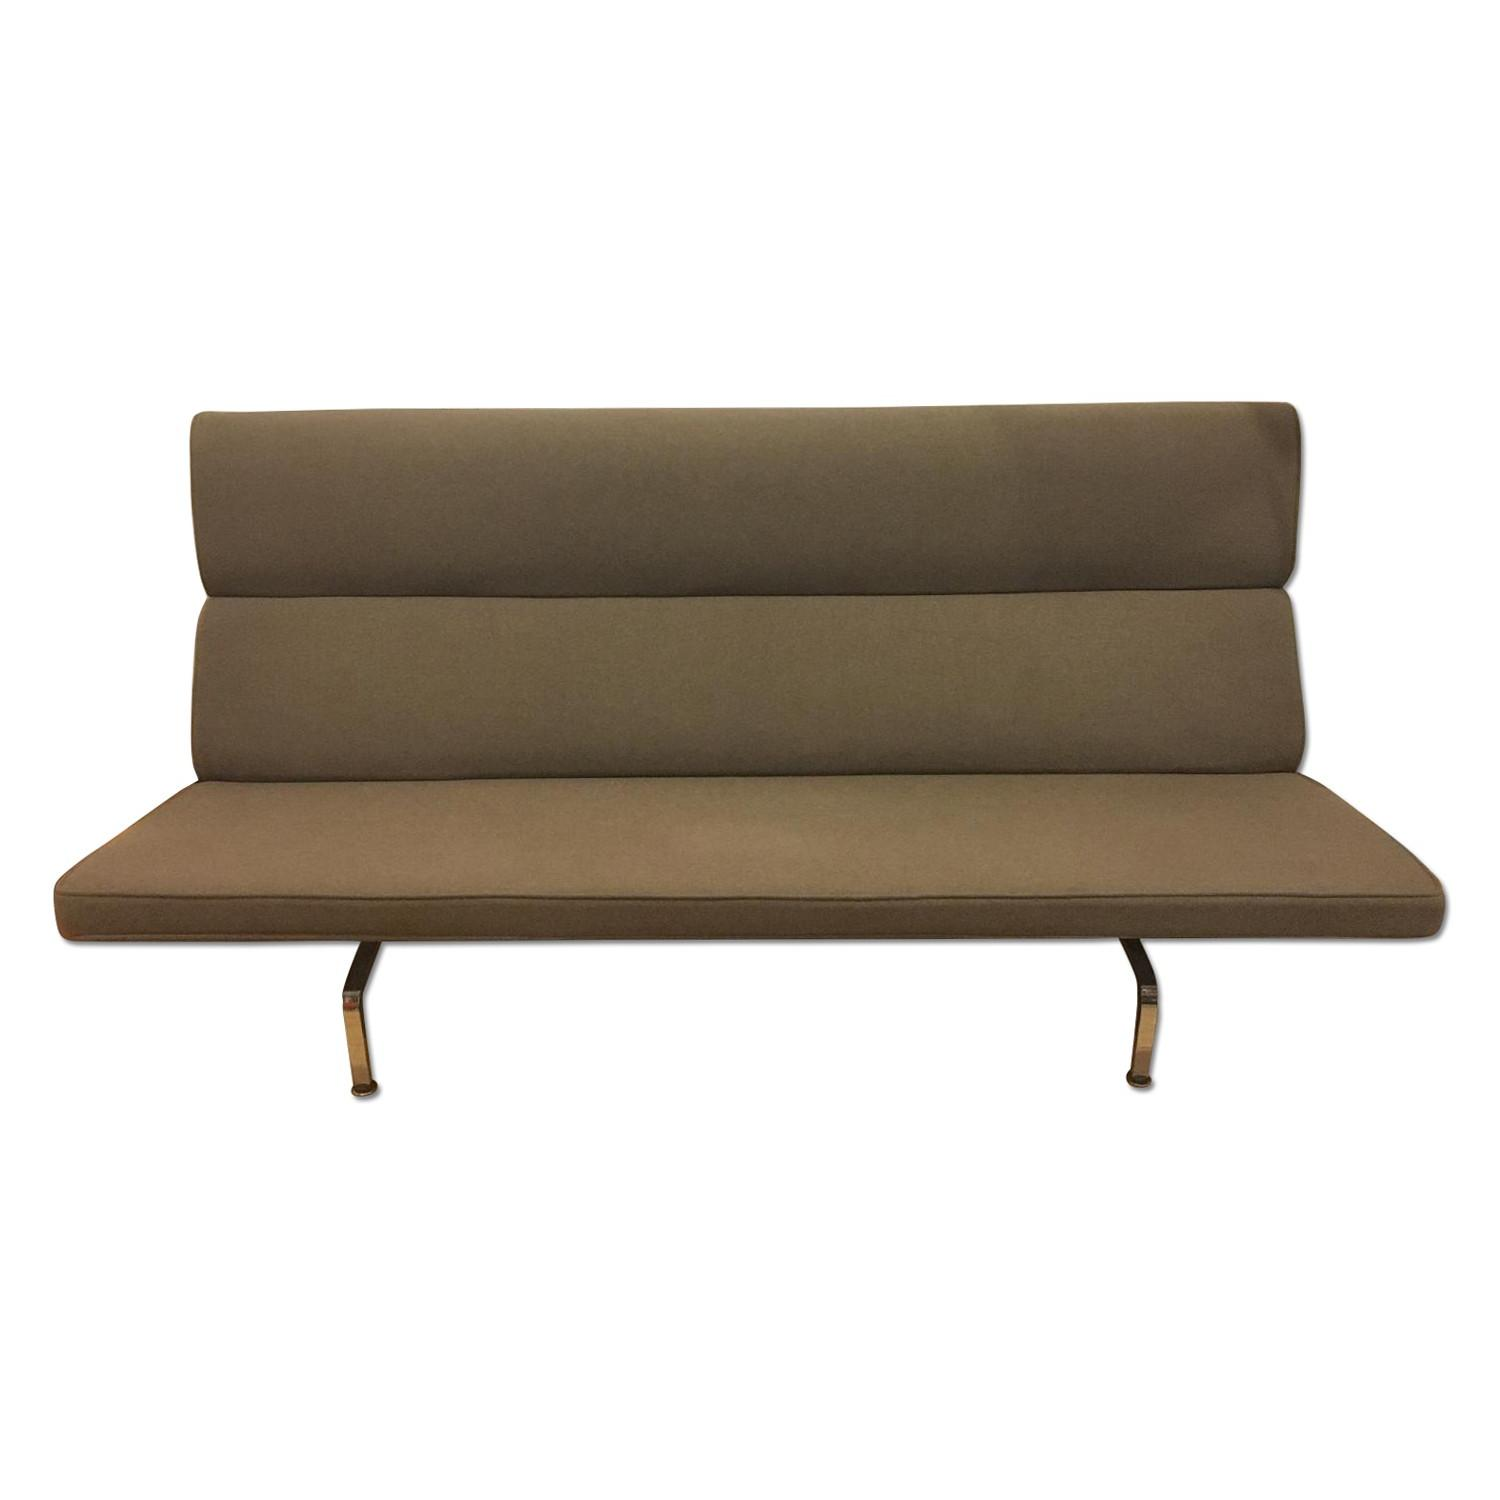 Eames Compact Sofa in Smoke - image-0